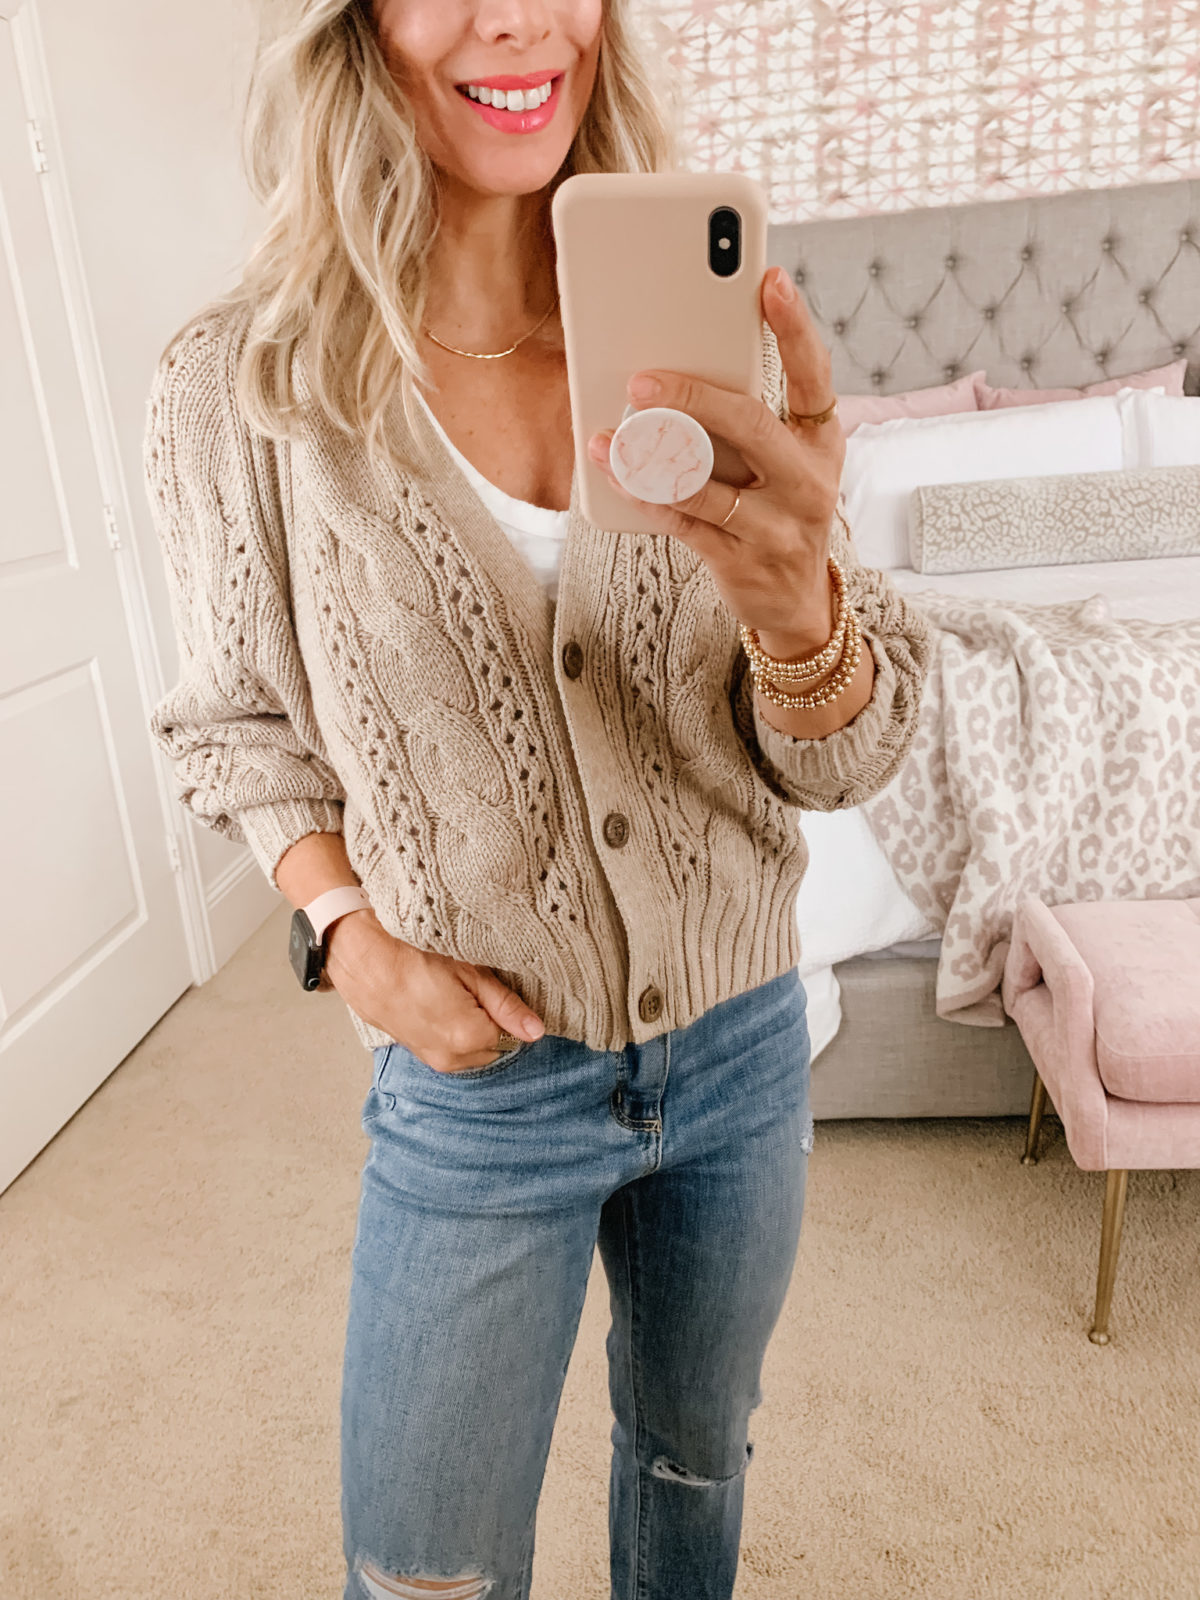 Target Fashion, White Tank, Sweater, Jeans, Sandals